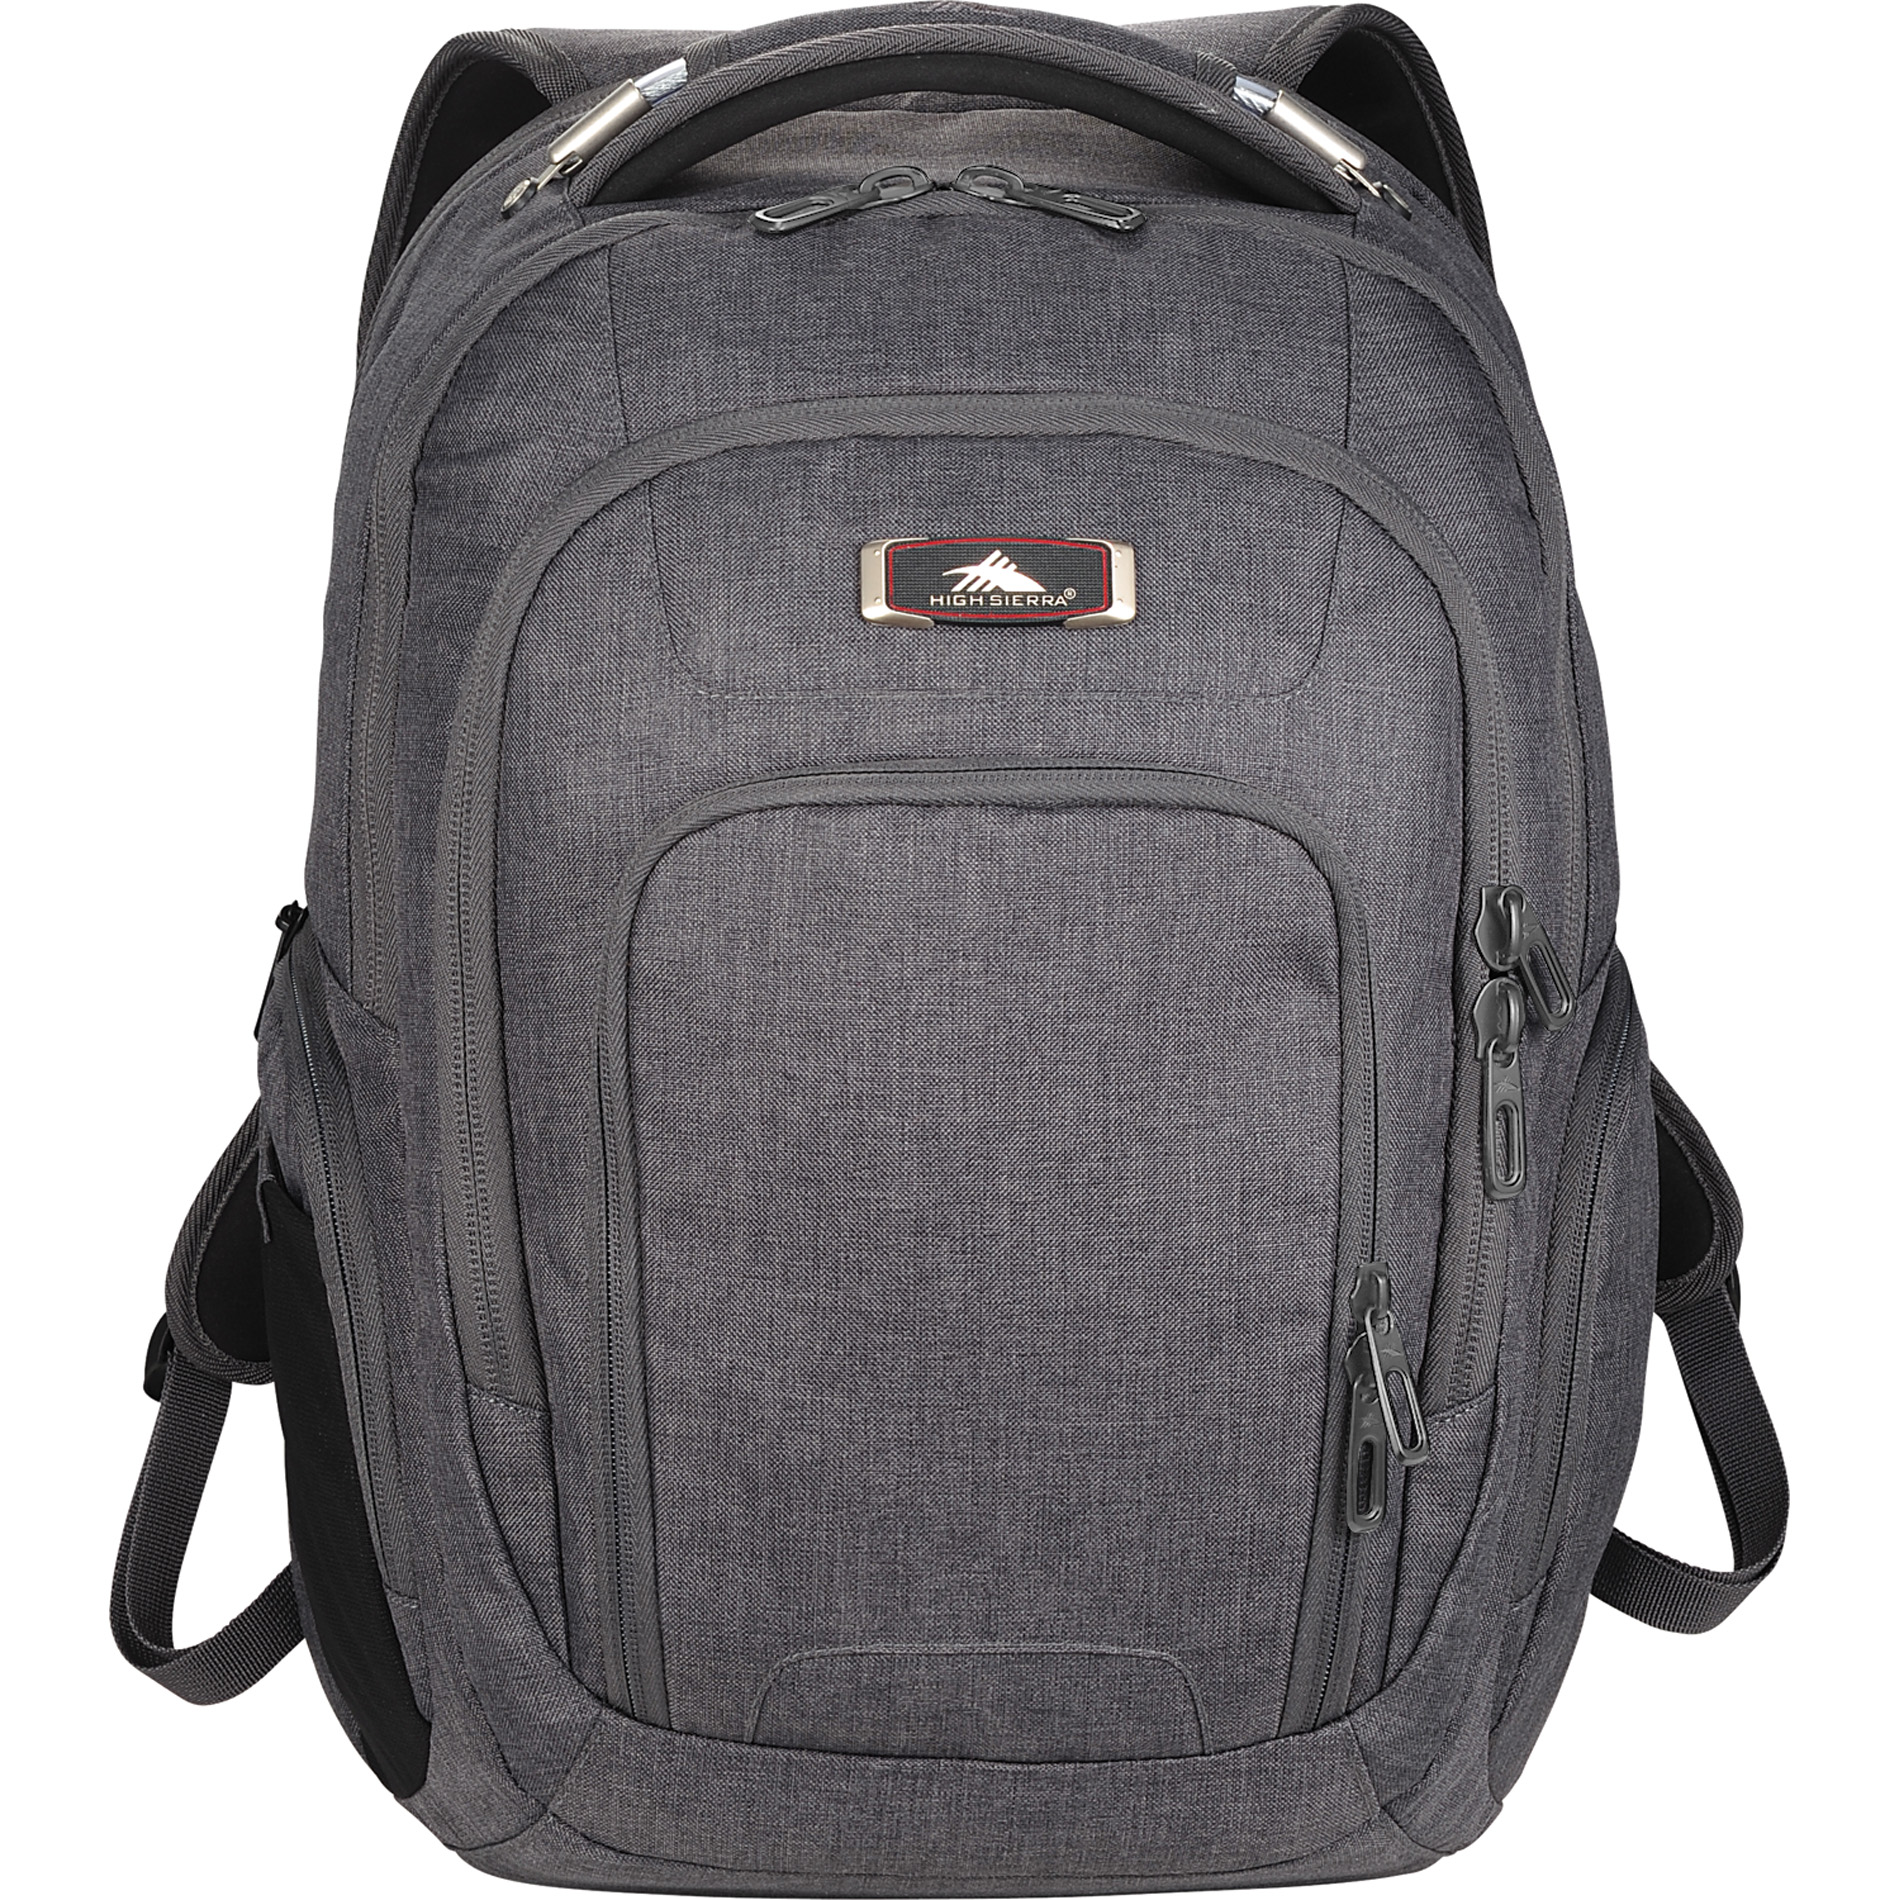 "High Sierra 8052-53 - 17"" Computer UBT Deluxe Backpack"